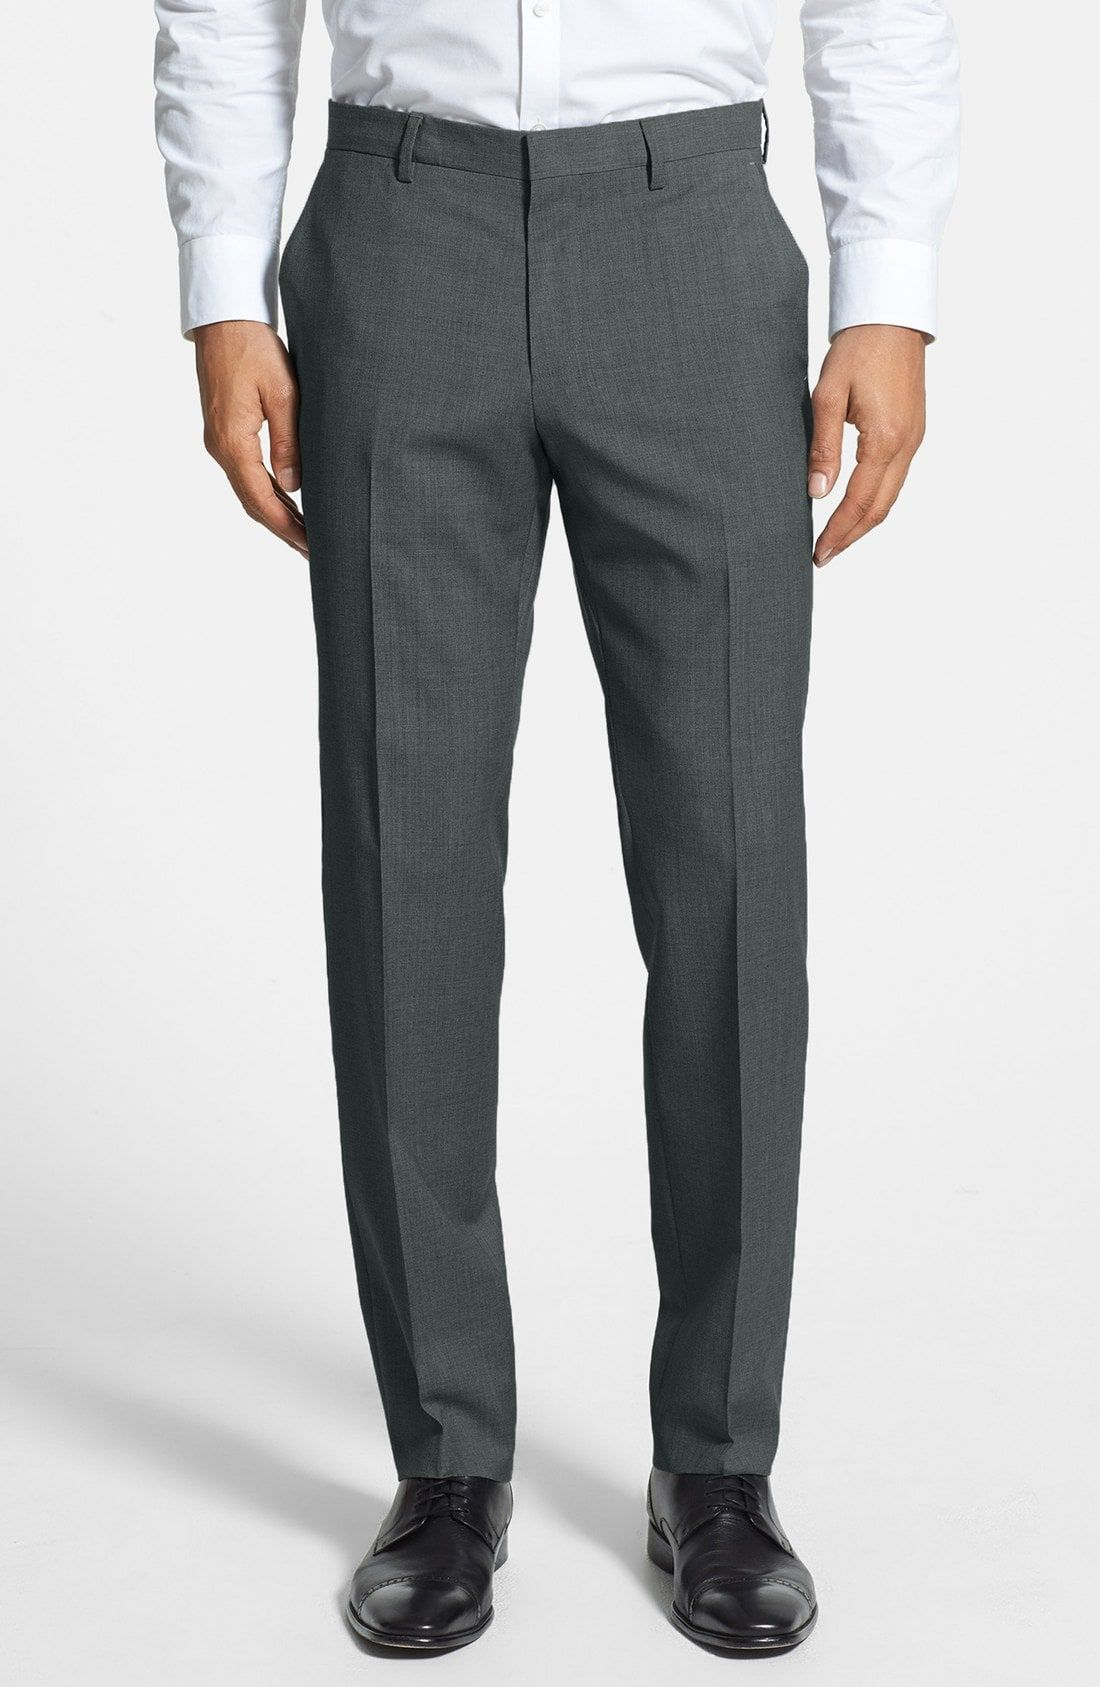 Boss genesis flat front trim fit wool trousers available